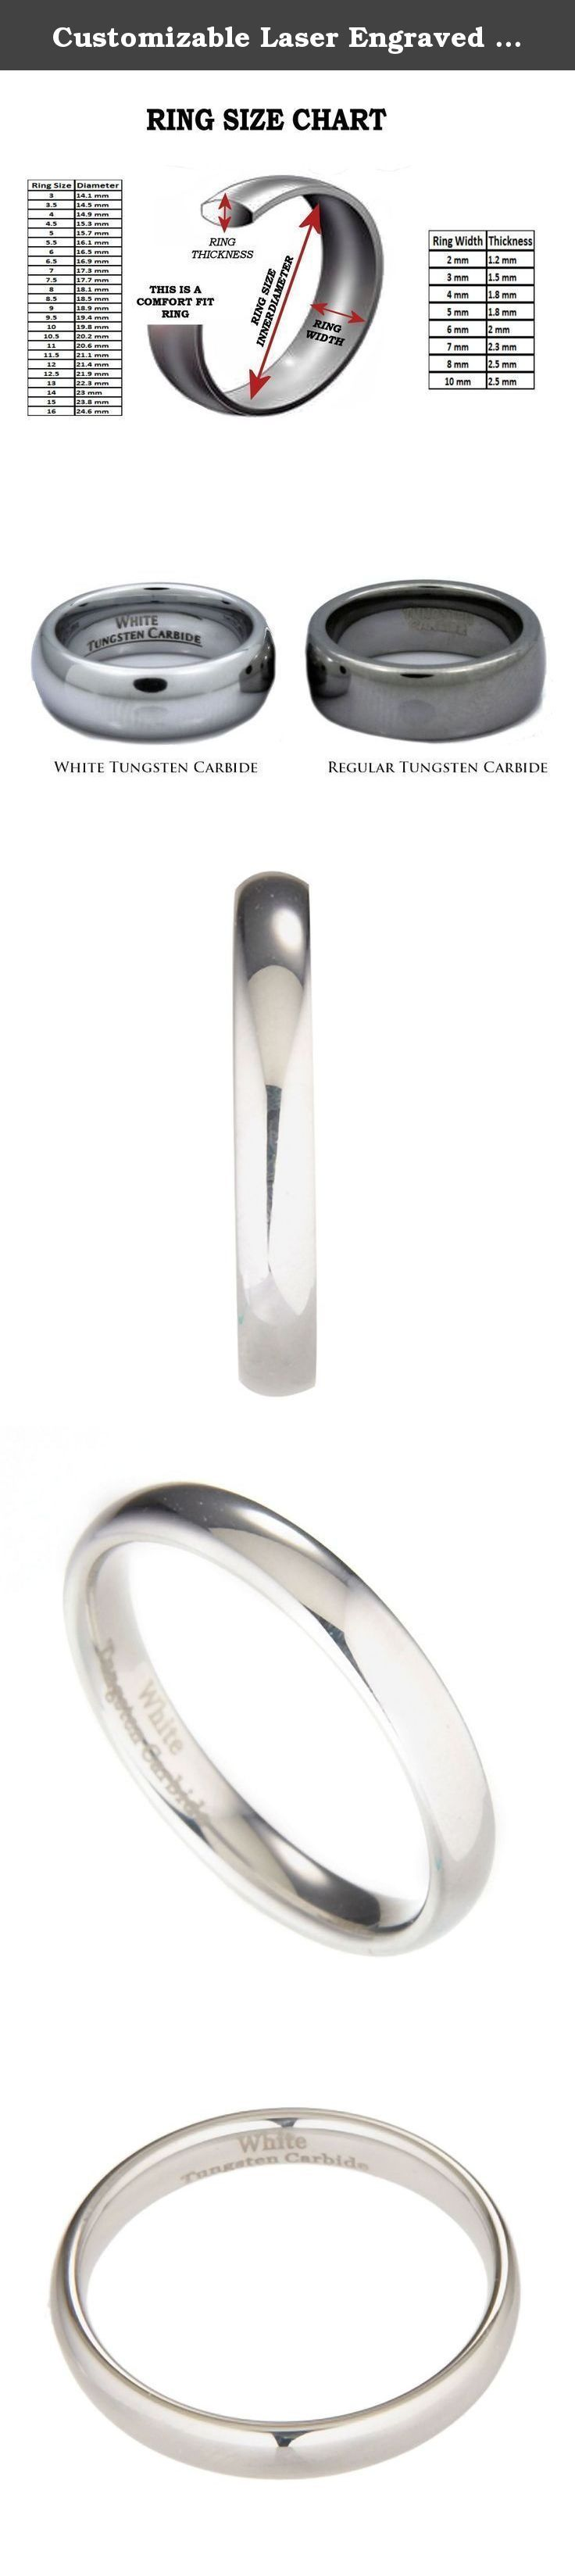 Customizable Laser Engraved 4MM White Tungsten Carbide Polished Classic Wedding Ring Size 10.5. The Metals Jewelry Collection Welcome to the Metals Jewelry Collection. We stock over 30,000 rings with a growing selection of pendants and earrings. Best known for our excellent customer service and unsurpassed quality plus incredible value! Here you will find a Special gift for that someone Special. This Classic White Tungsten Carbide Ring features a High Polish, Mirror Finish giving it a…